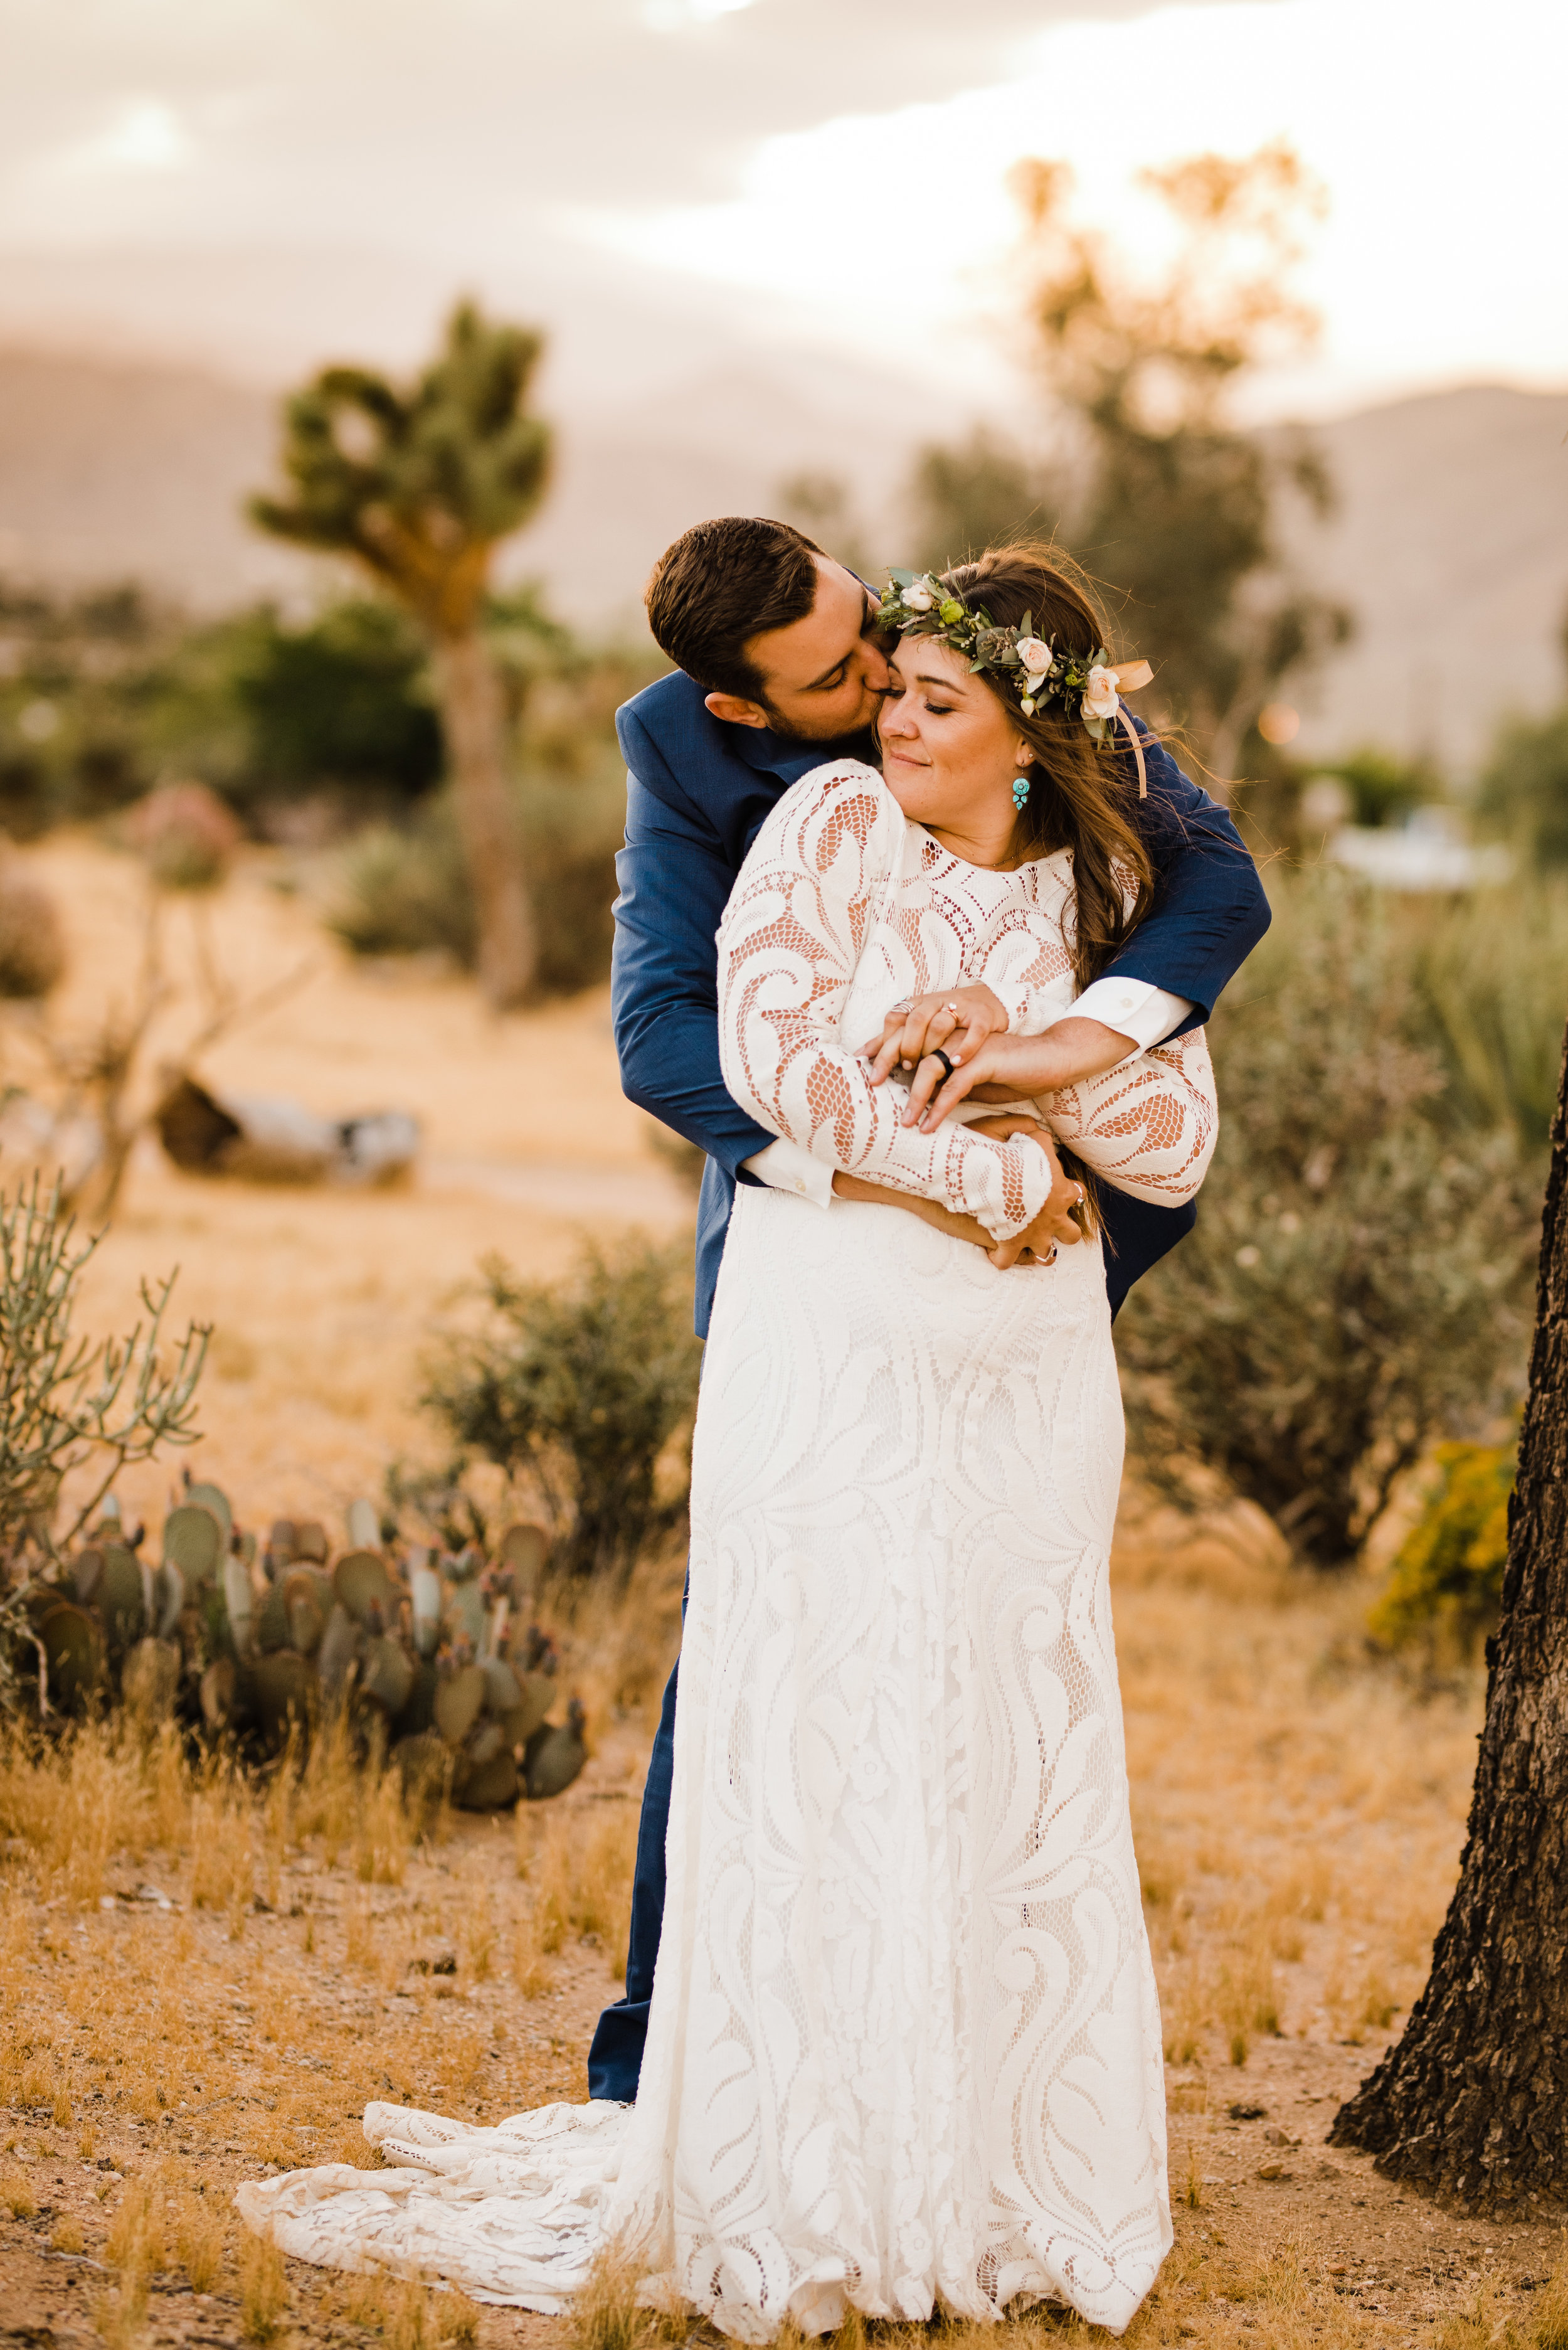 golden hour photo of bride and groom at tumbleweed sanctuary hugging - bride's dress by lovers society and groom wearing a suit by friar tux